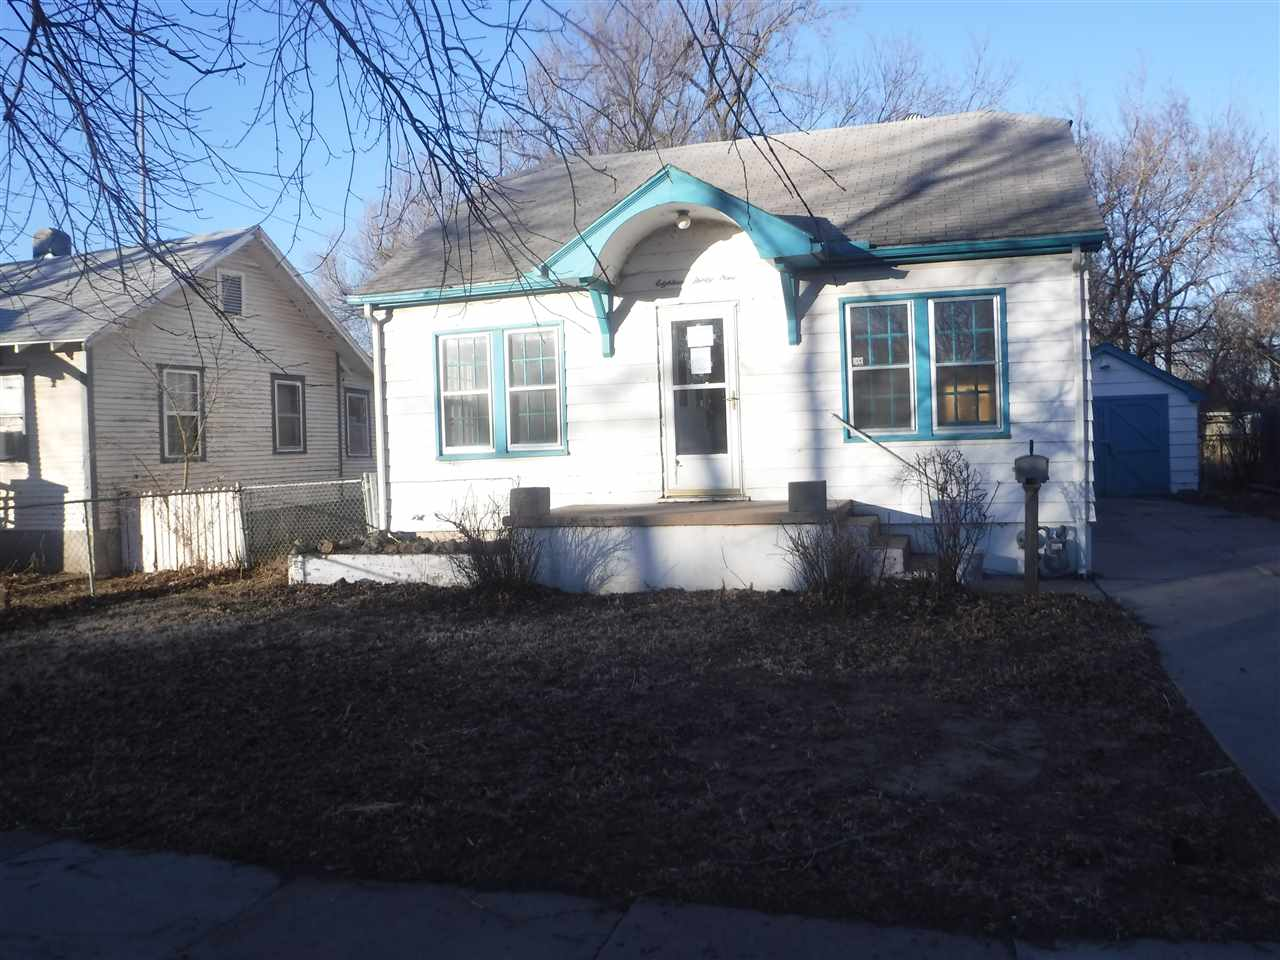 Great starter or downsize home.  Listed with lots of value.  This home is very close to I-135 so wor